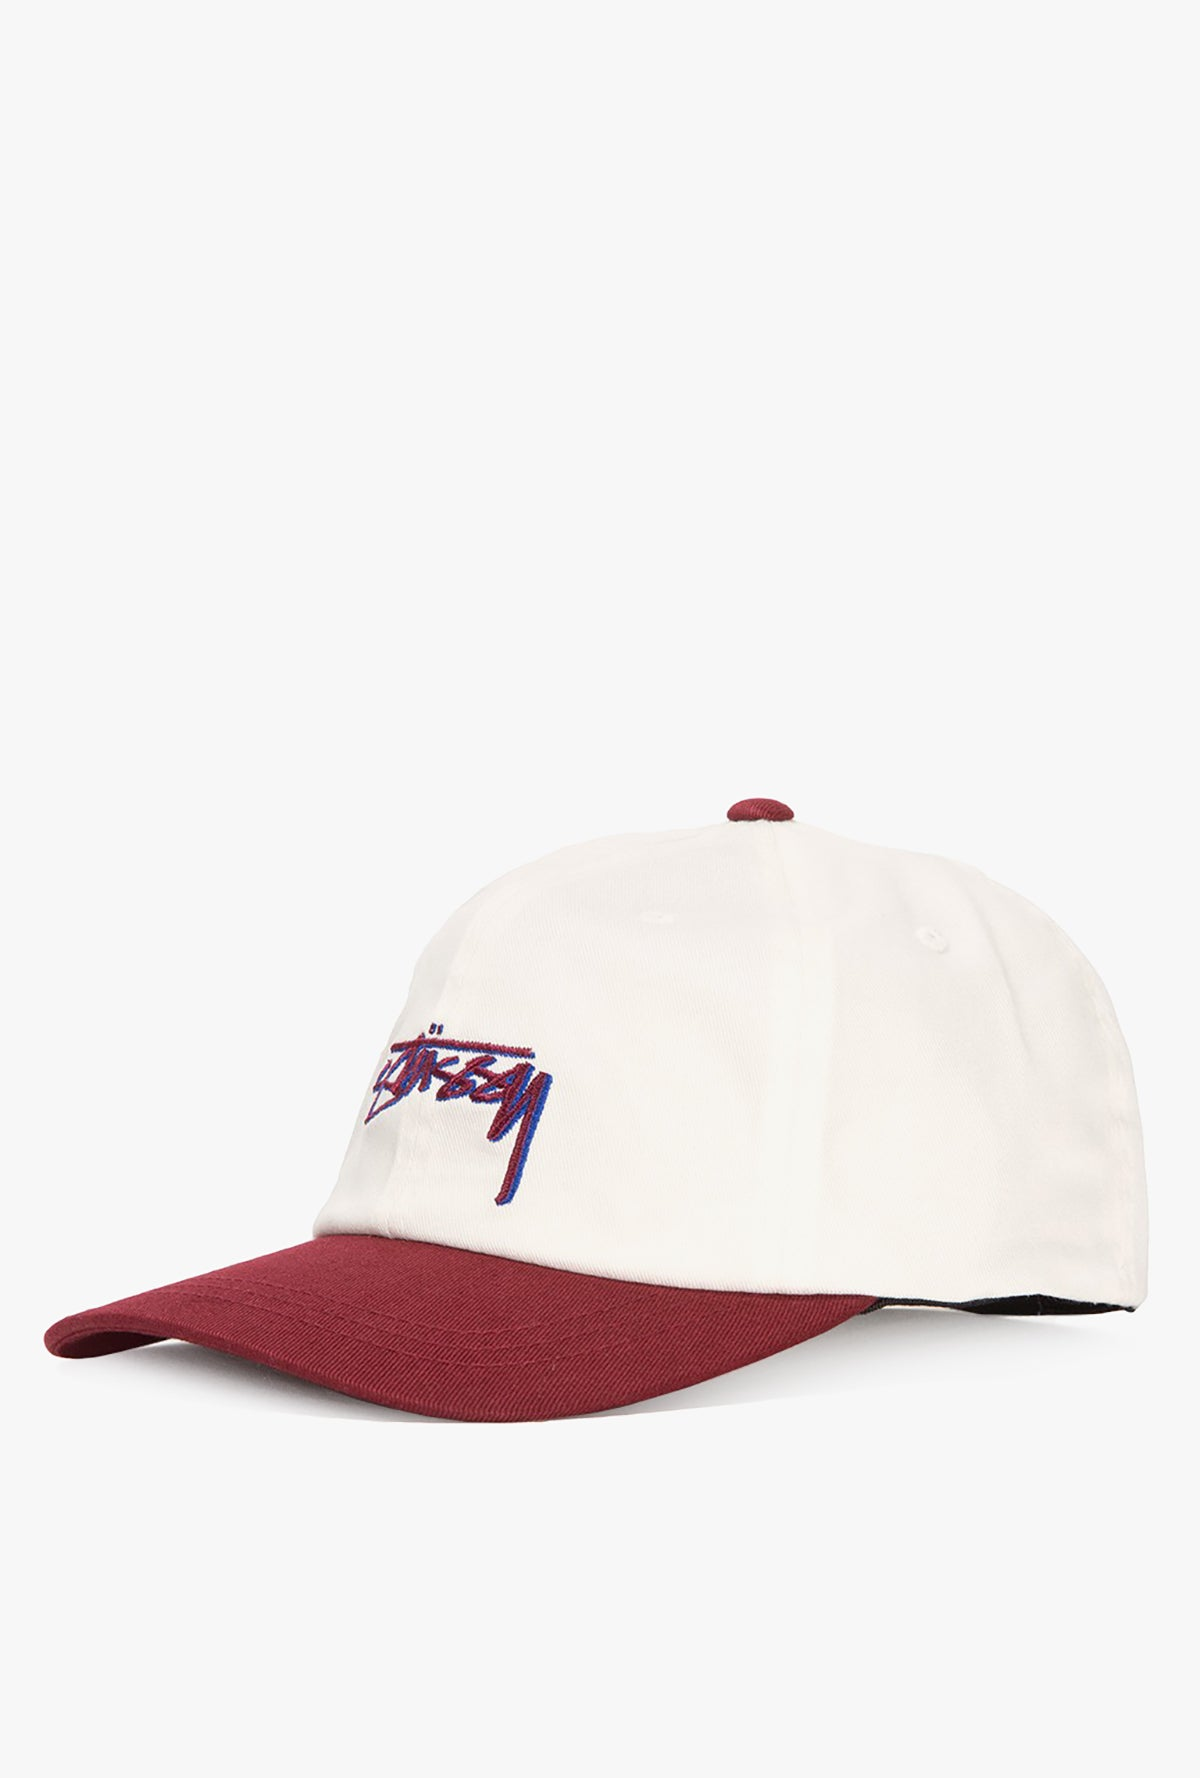 Stussy Fitted Low Cap